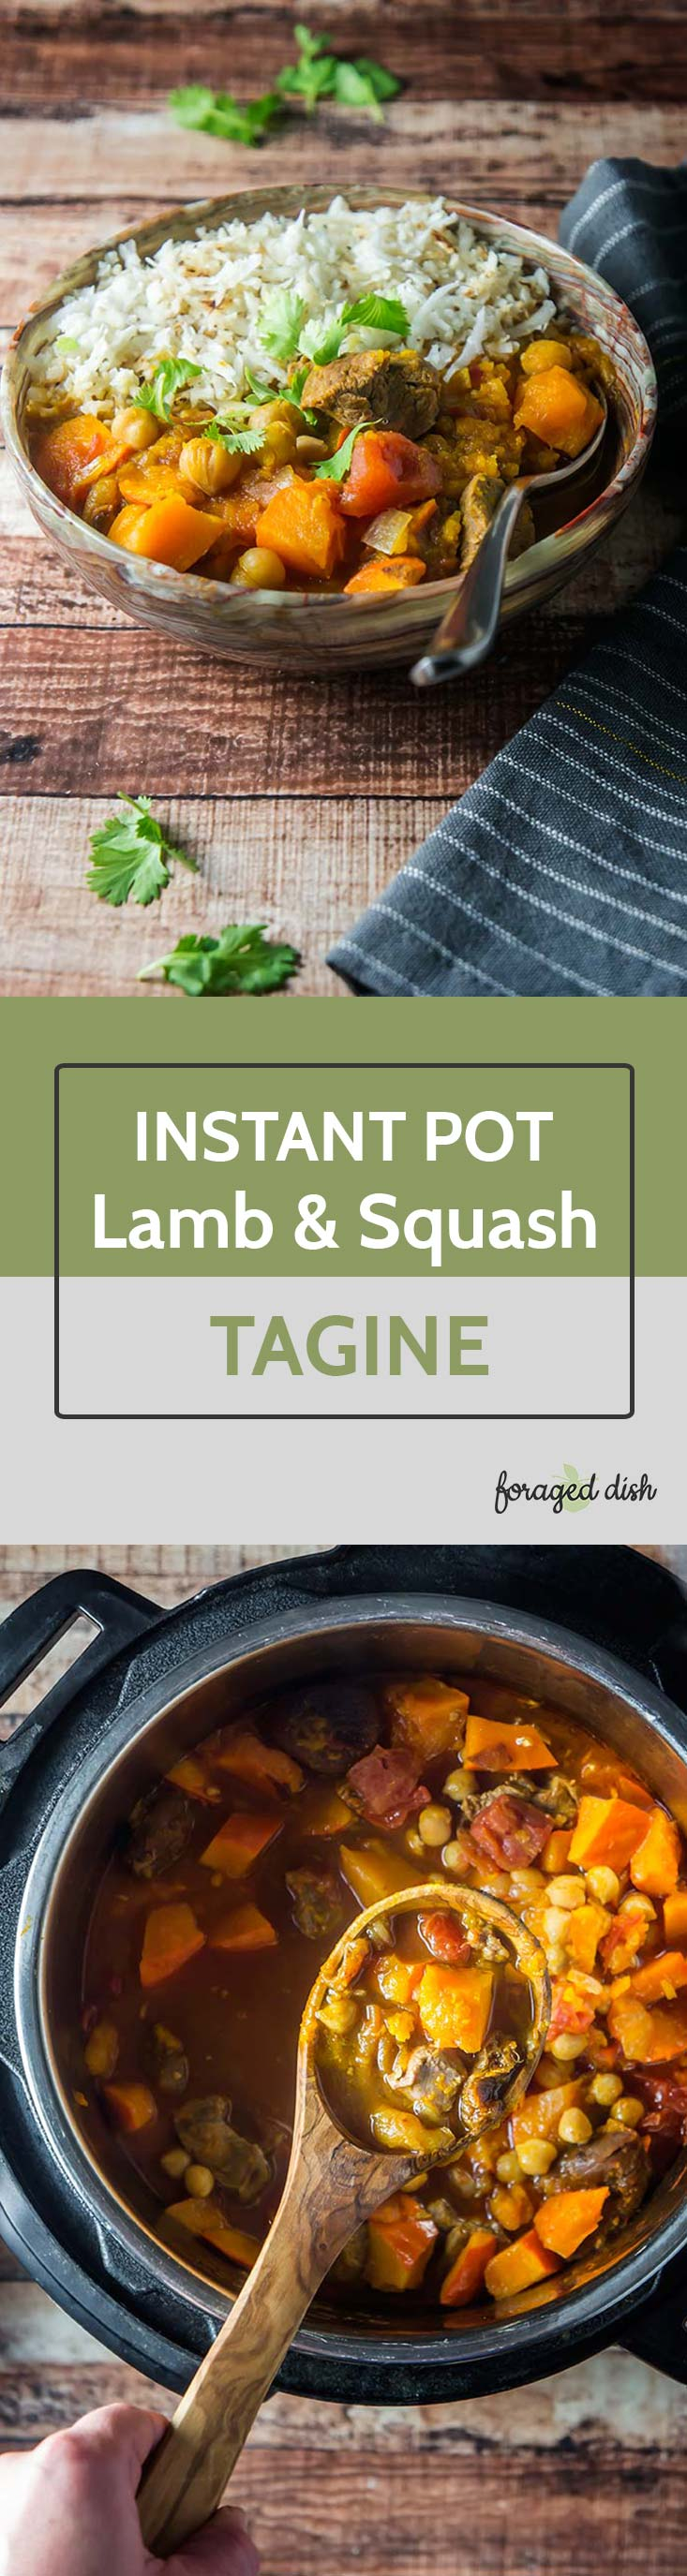 Instant Pot Lamb & Winter Squash Tagine with Apricots & Chickpeas